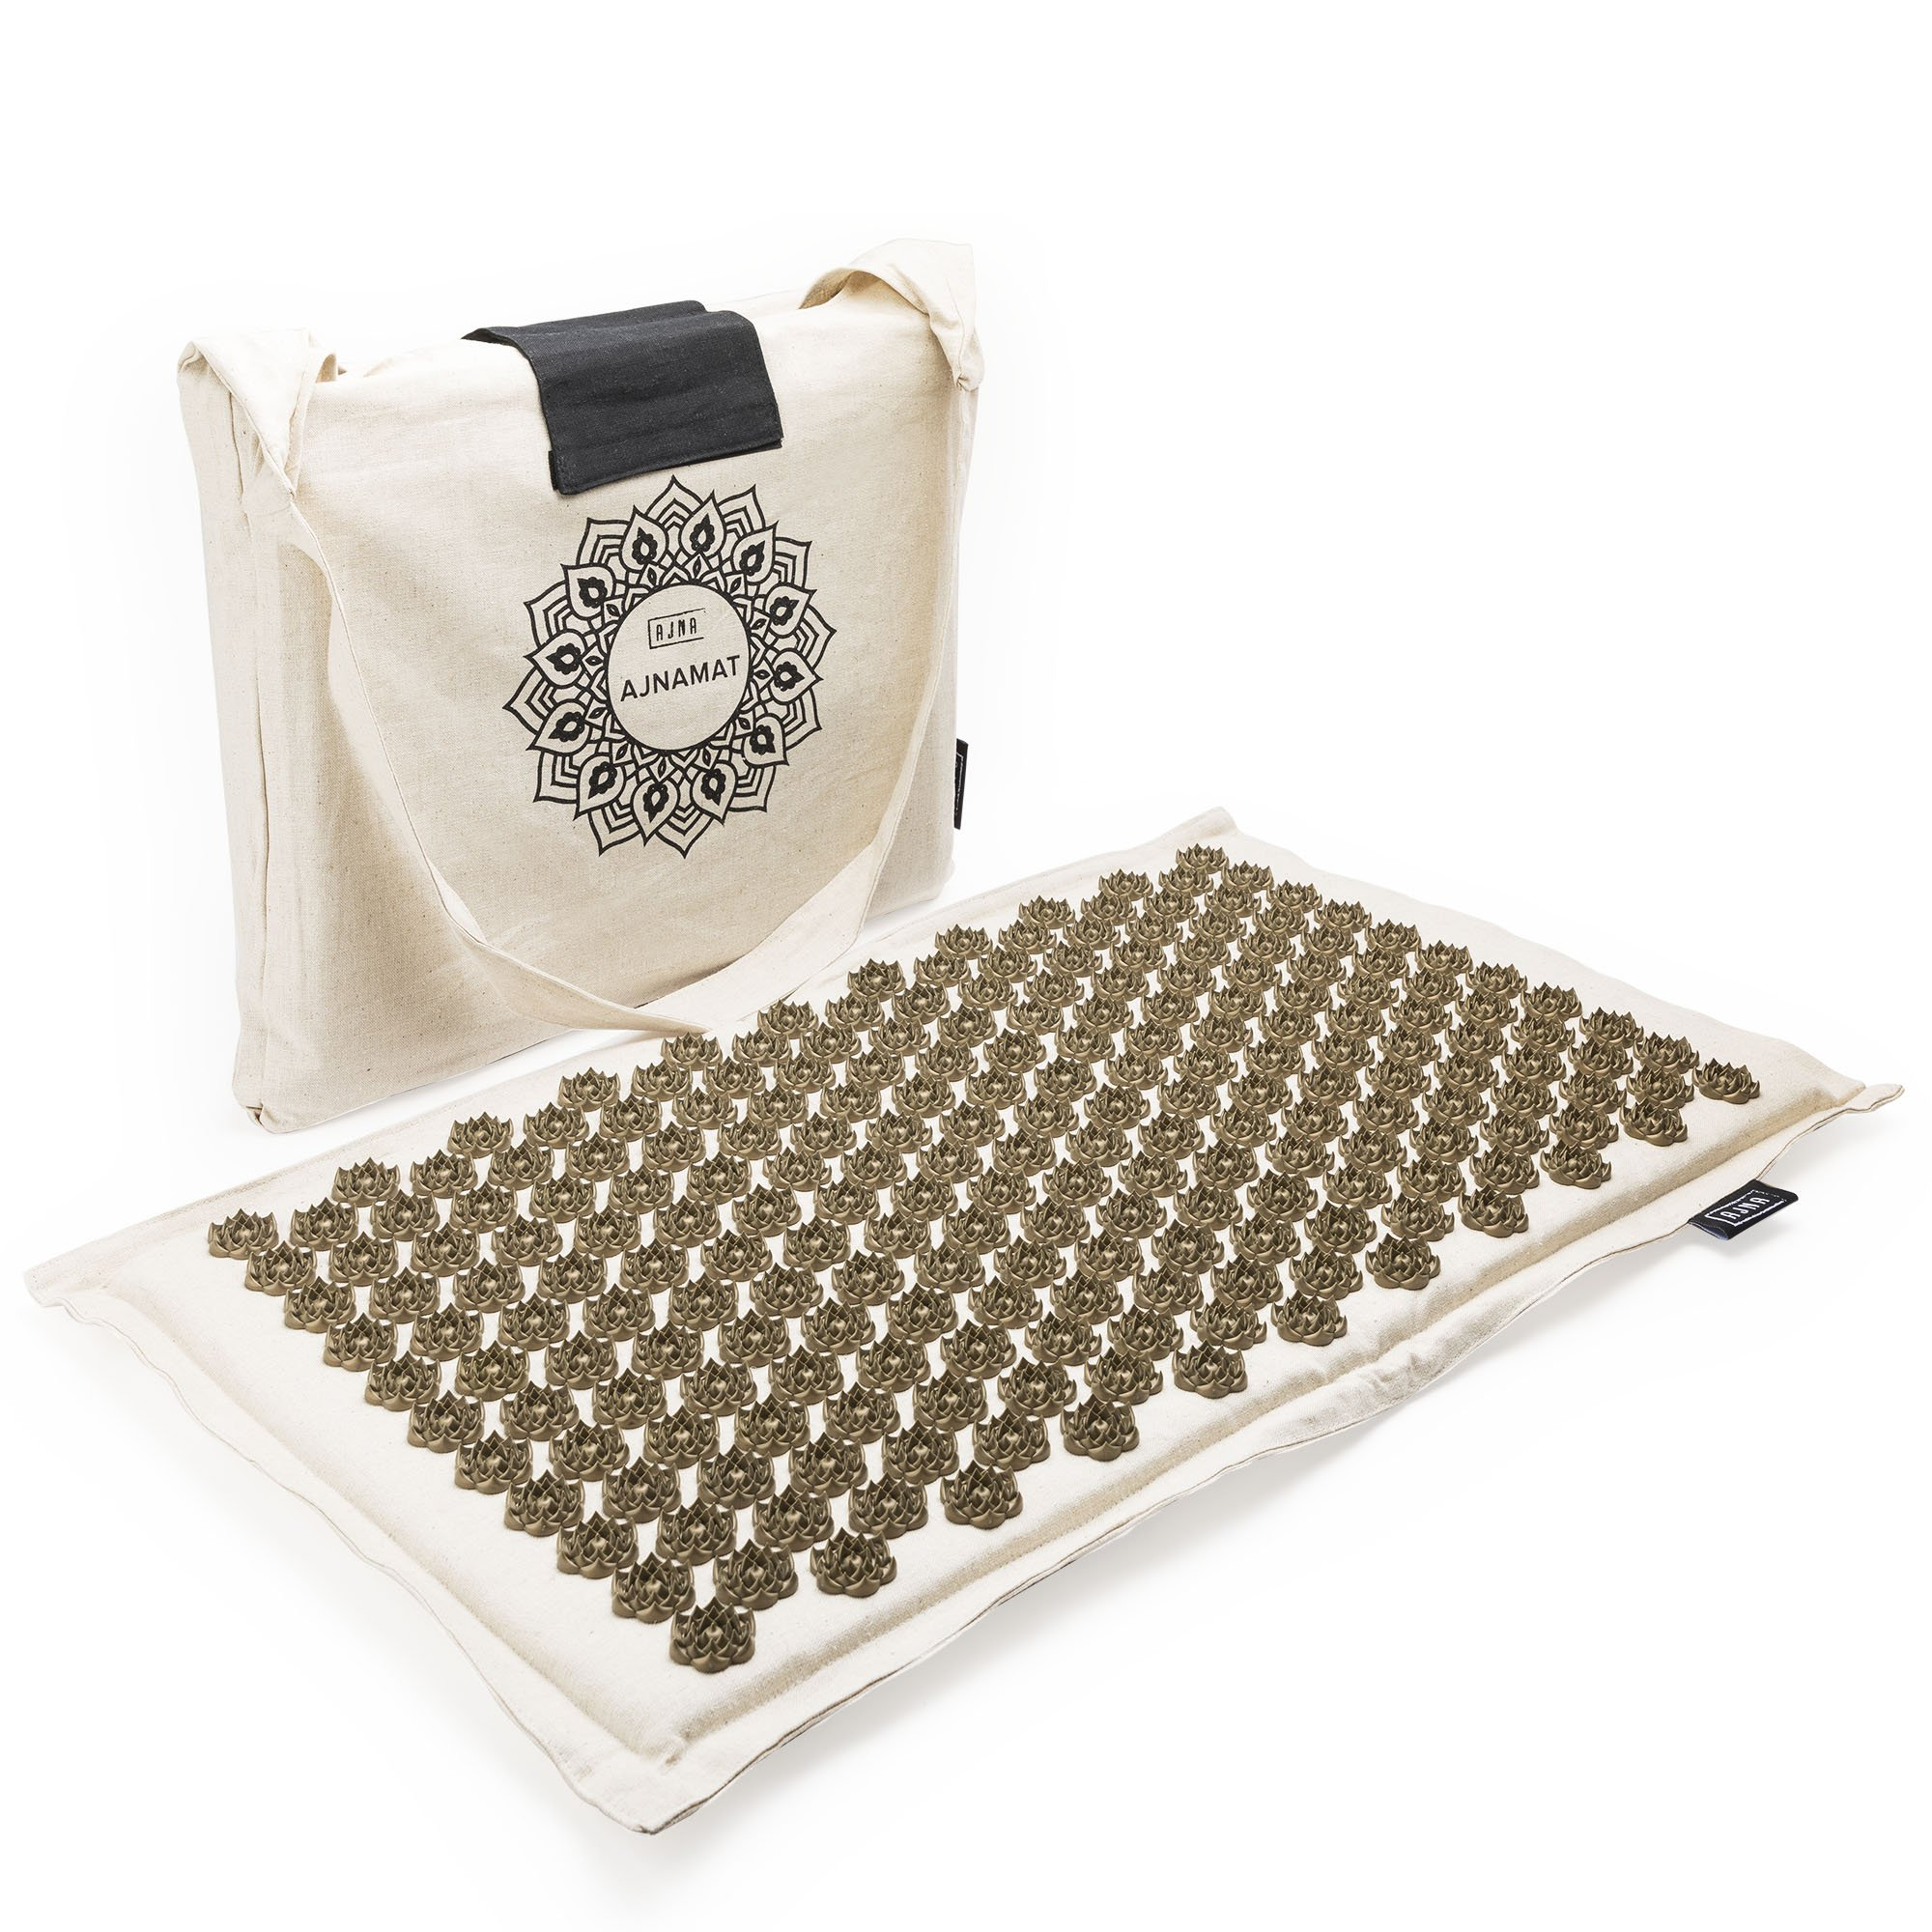 Eco Acupressure Massage Mat Natural Linen Cotton | Acupuncture Mats for Neck, Back, Reflexology, Sciatica, Trigger Point and Massage Therapy, Manual Massage | Stress Relief Pad with Free Carry Bag